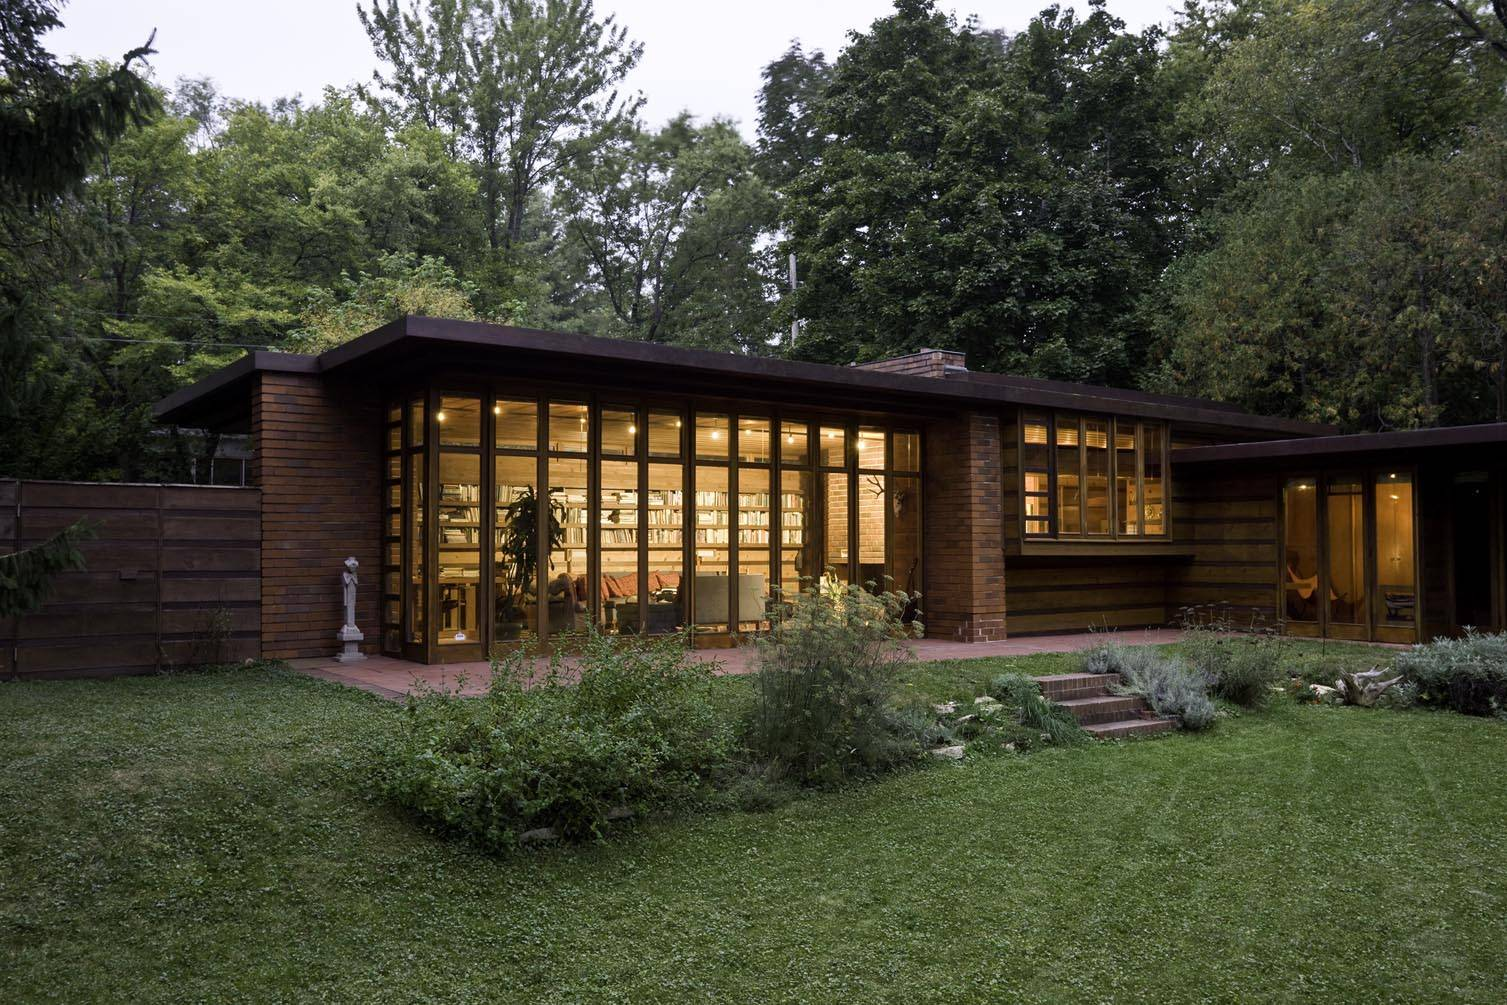 Instant house frank lloyd wright 39 s usonian homes for Usonian house plans for sale